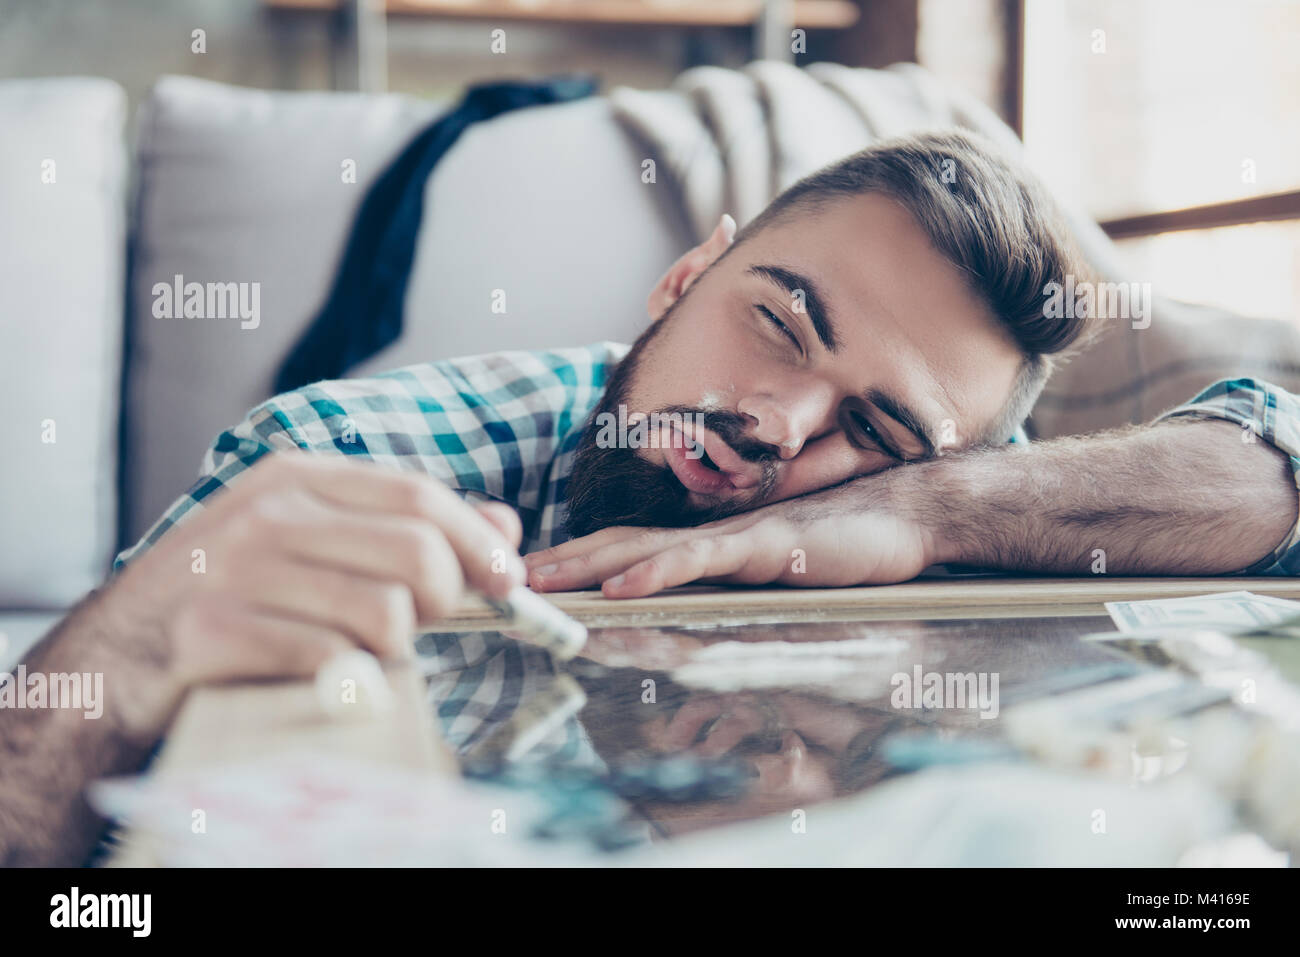 Close up photo of happy delightful feeling ecstasy bearded with stylish hairdo, he is lying on a table after sniffing - Stock Image